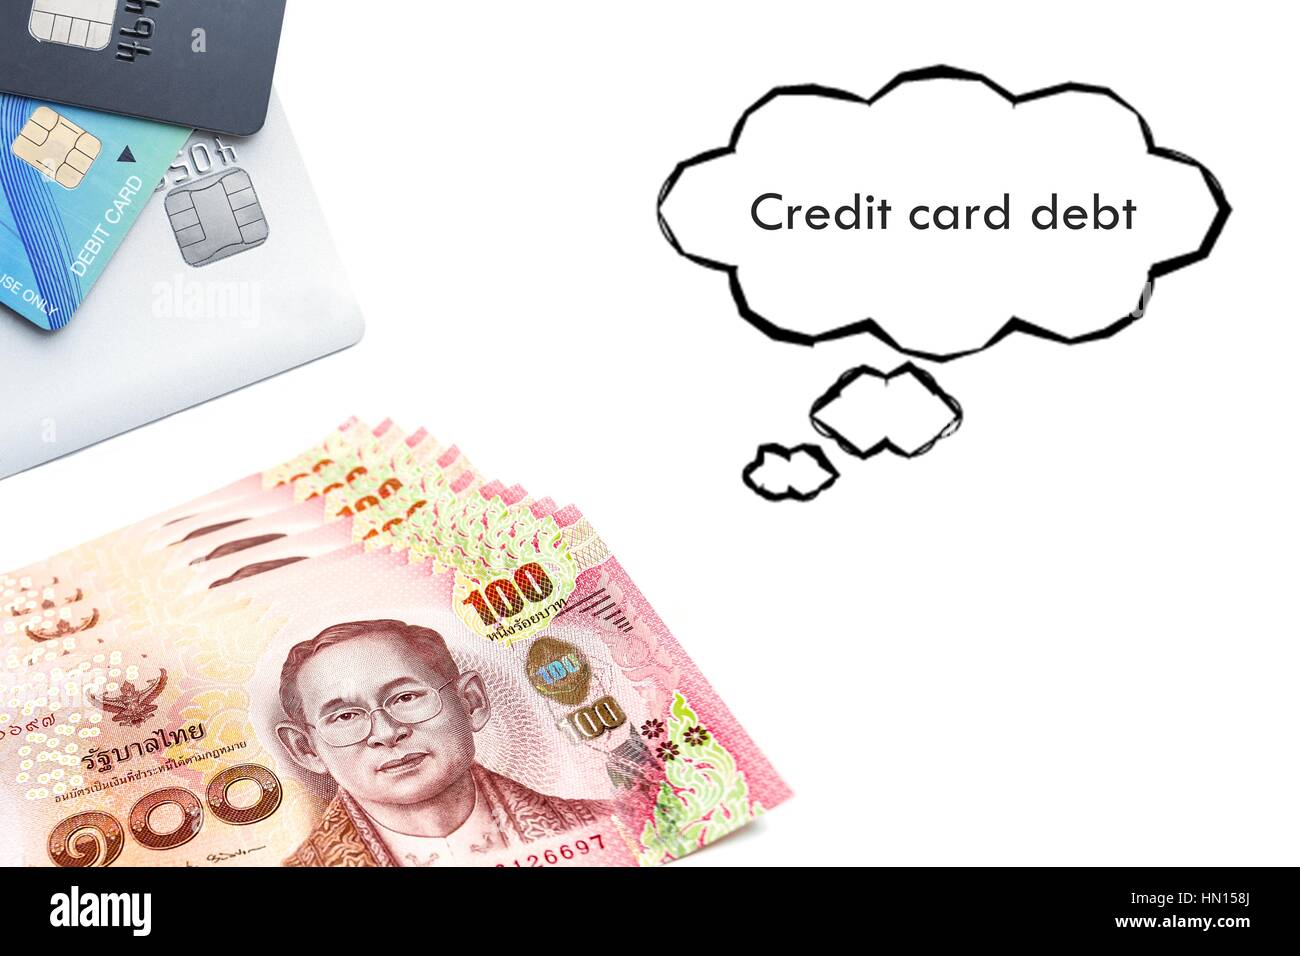 Terms on credit card and debit card Ccredit card debt text - Stock Image